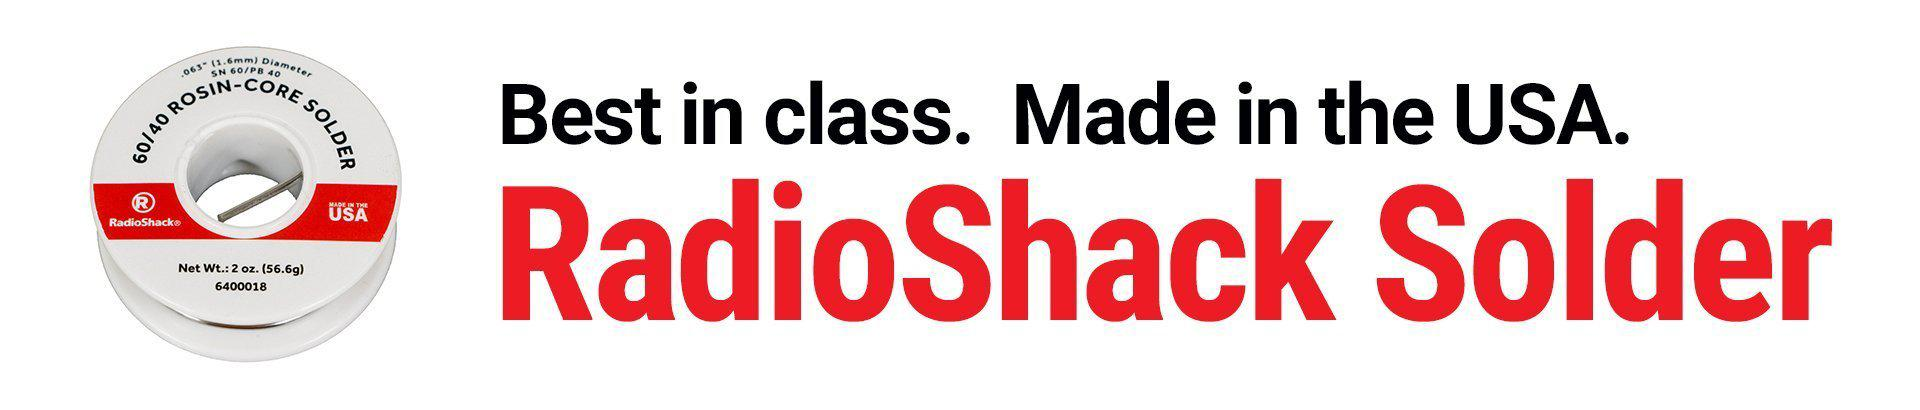 RadioShack Solder: Best in class. Made in the USA.